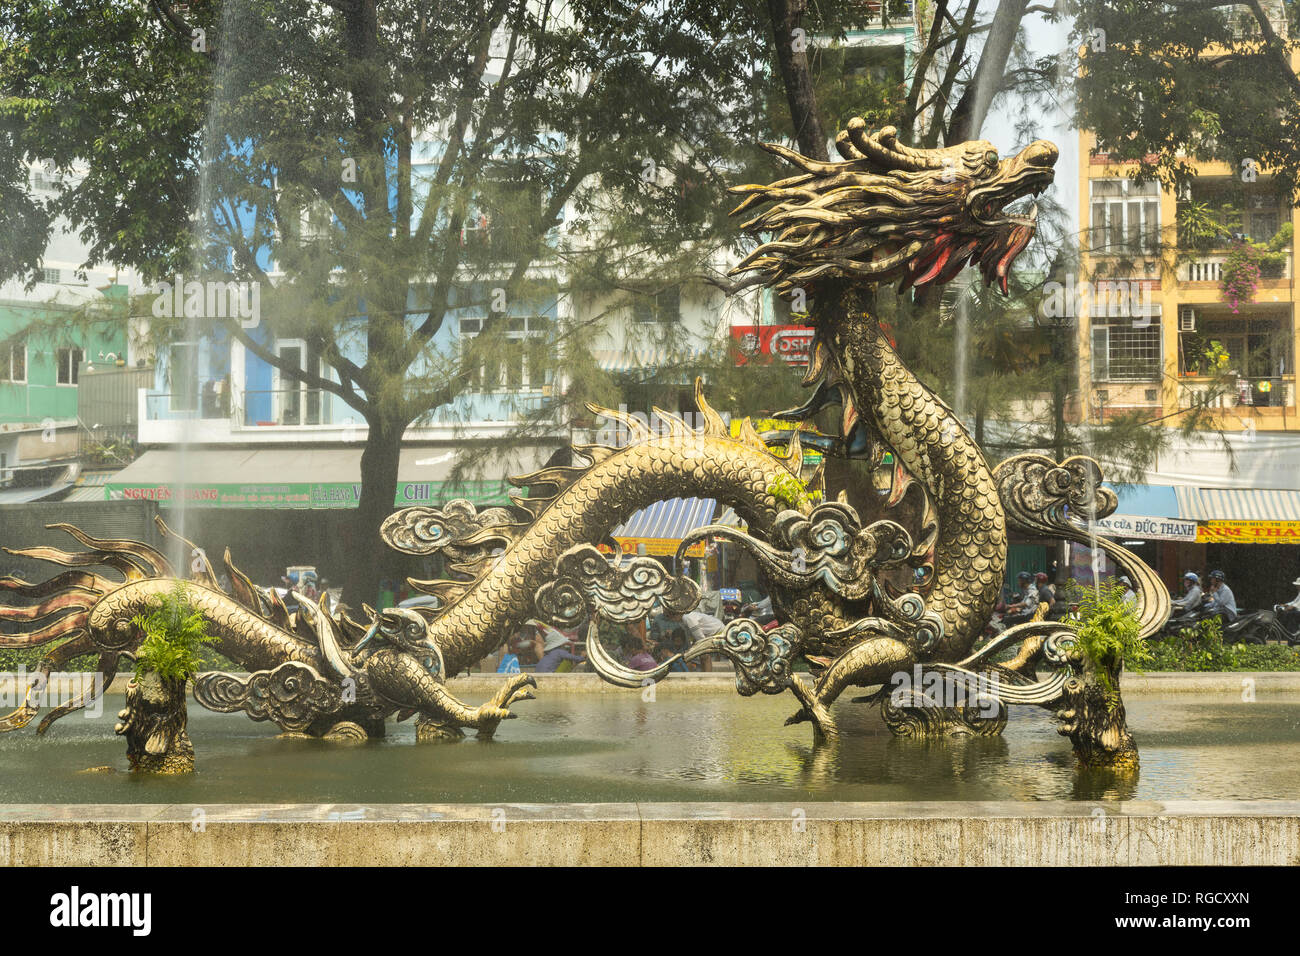 Sculpture of the dragon in Chinatown in Ho Chi Minh in Vietnam - Stock Image